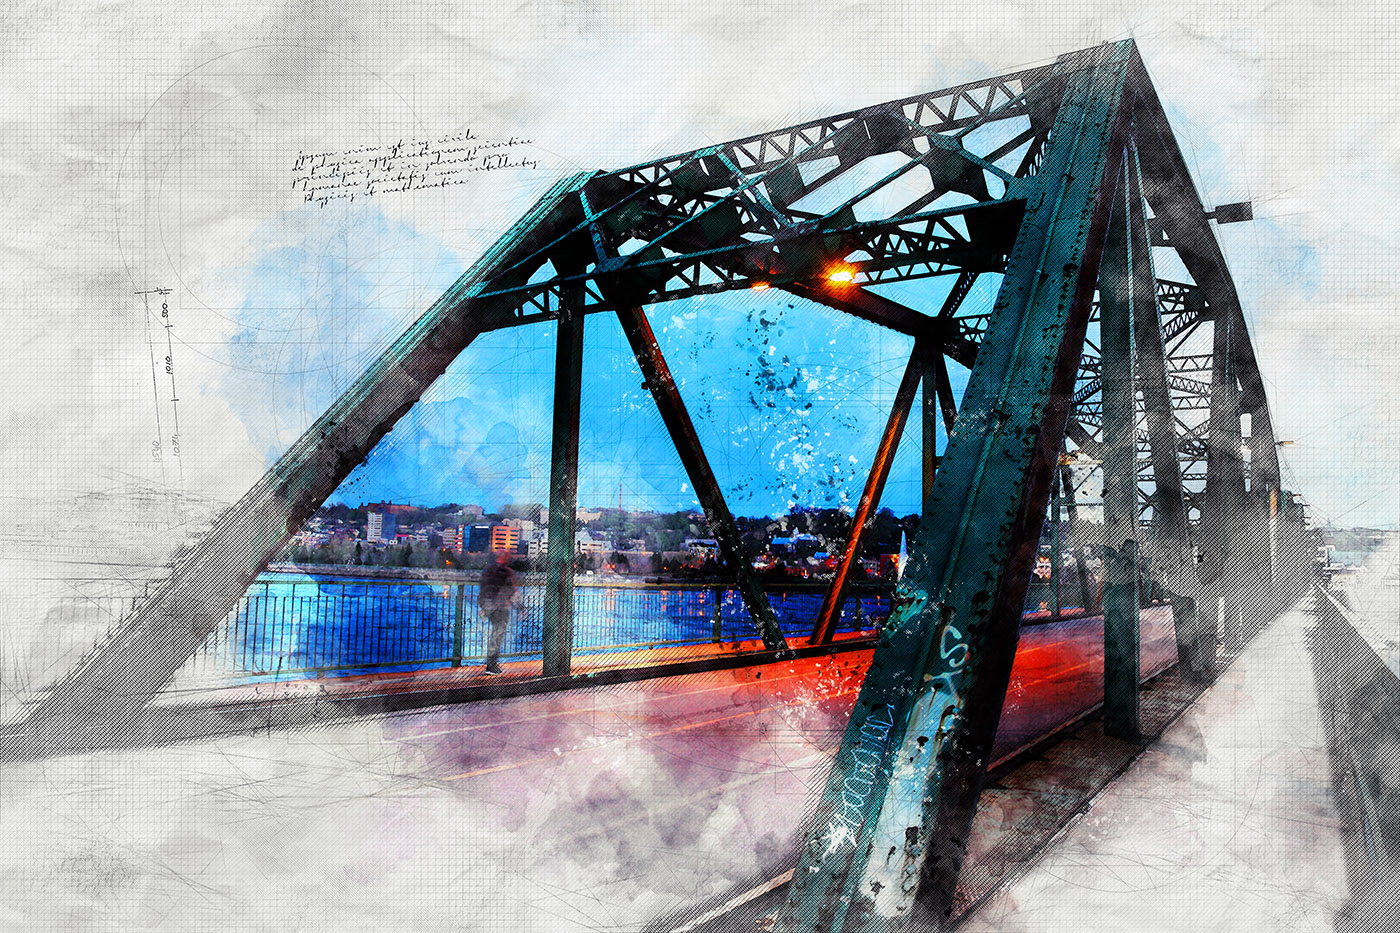 Old Bridge over the Saguenay River Sketch Image - Royalty-Free Stock Imagery